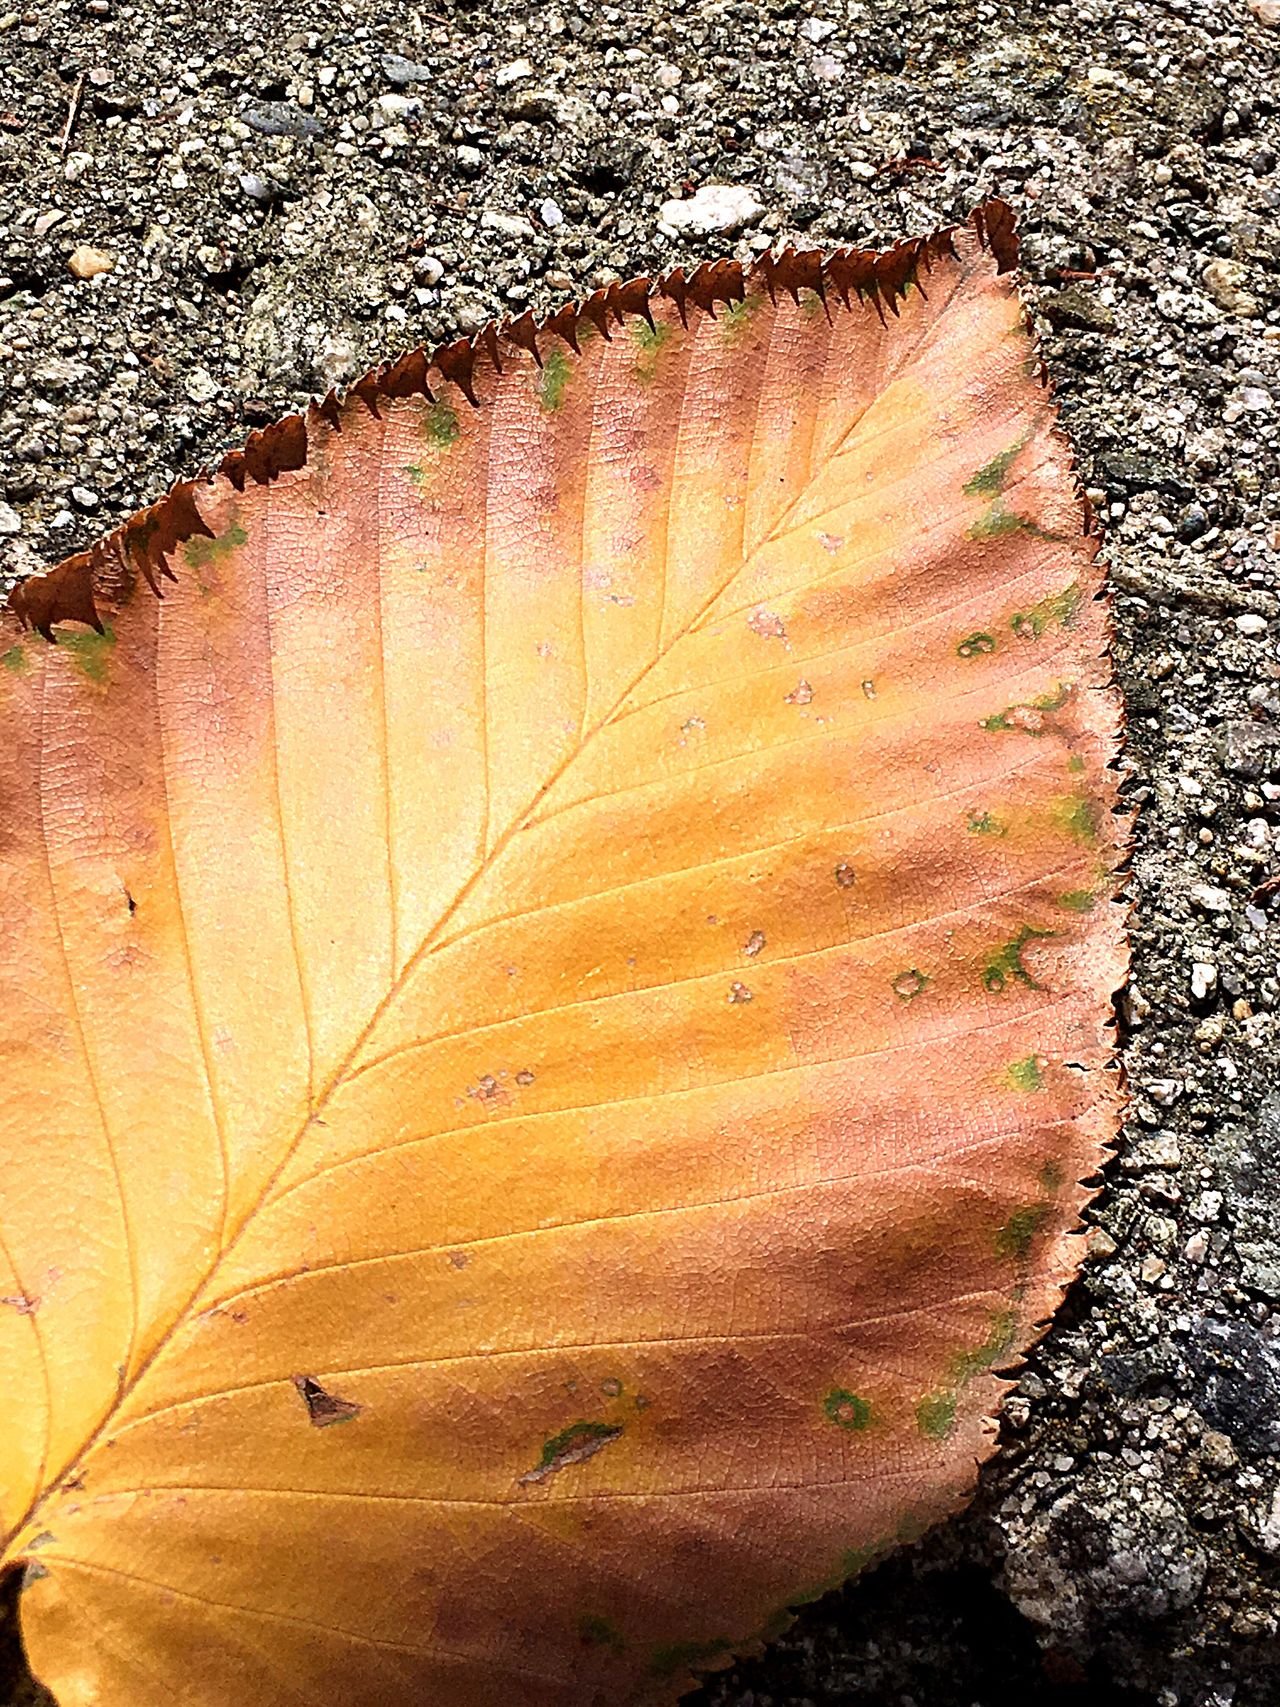 Leaf Autumn Leaves Fallen Fall Leaves Macro Lines, Shapes And Curves Patterns In Nature Pattern, Texture, Shape And Form Lines Symmetry Symmetry In Nature Pavement Outdoors